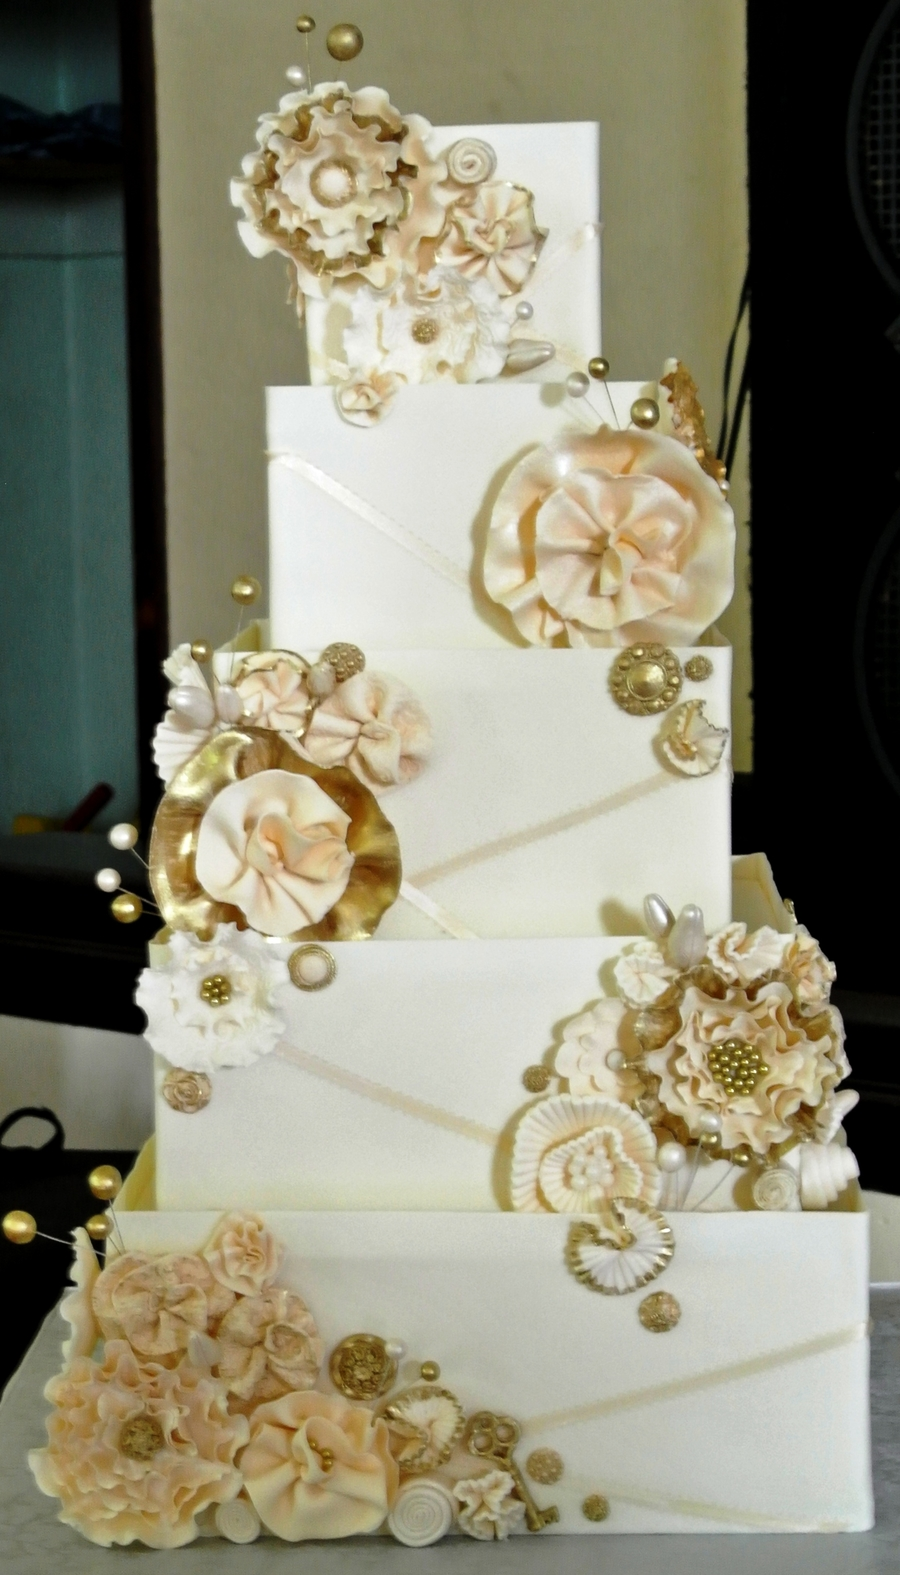 Wedding Cake With Gold Accents - CakeCentral.com